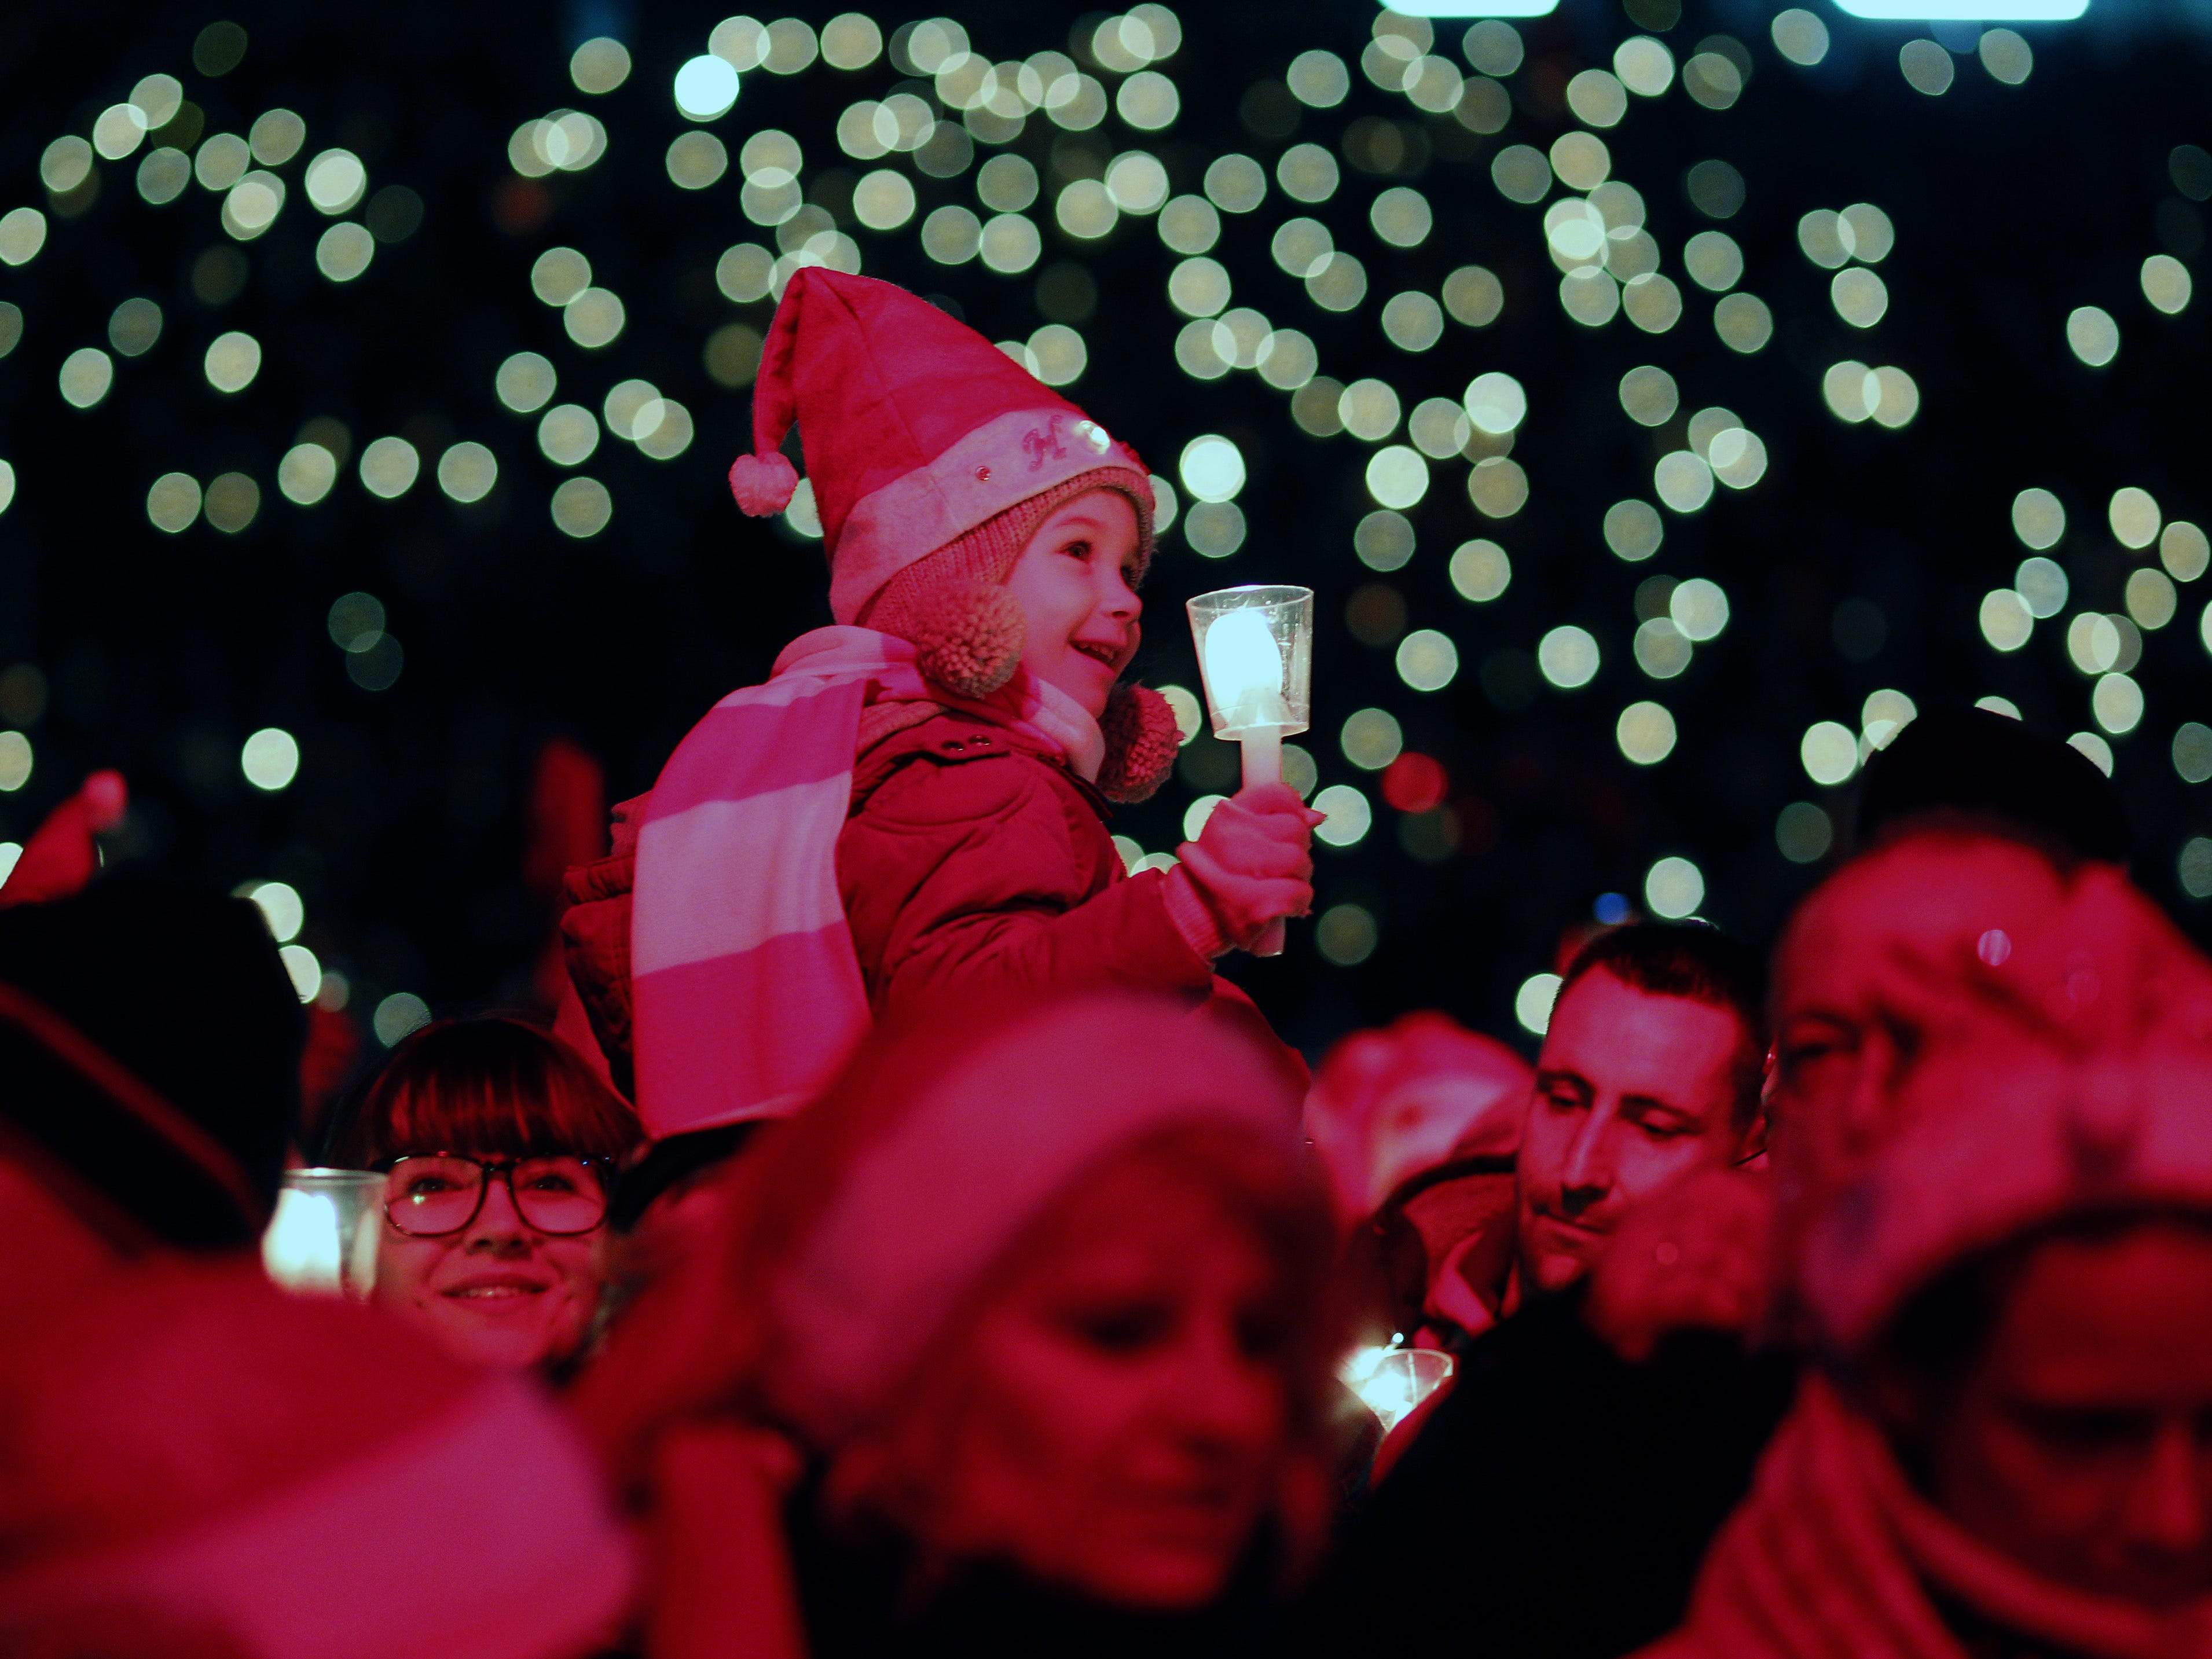 Tarja, age 4, daughter of a fan family of the FC Union football club, which permitted she to be photographed, hold a candle as she sing Christmas carols in the club's stadium  on December 23, 2018 in Berlin, Germany. The annual gathering has become a firm tradition now in its 16th year. All 28,500 tickets were sold.